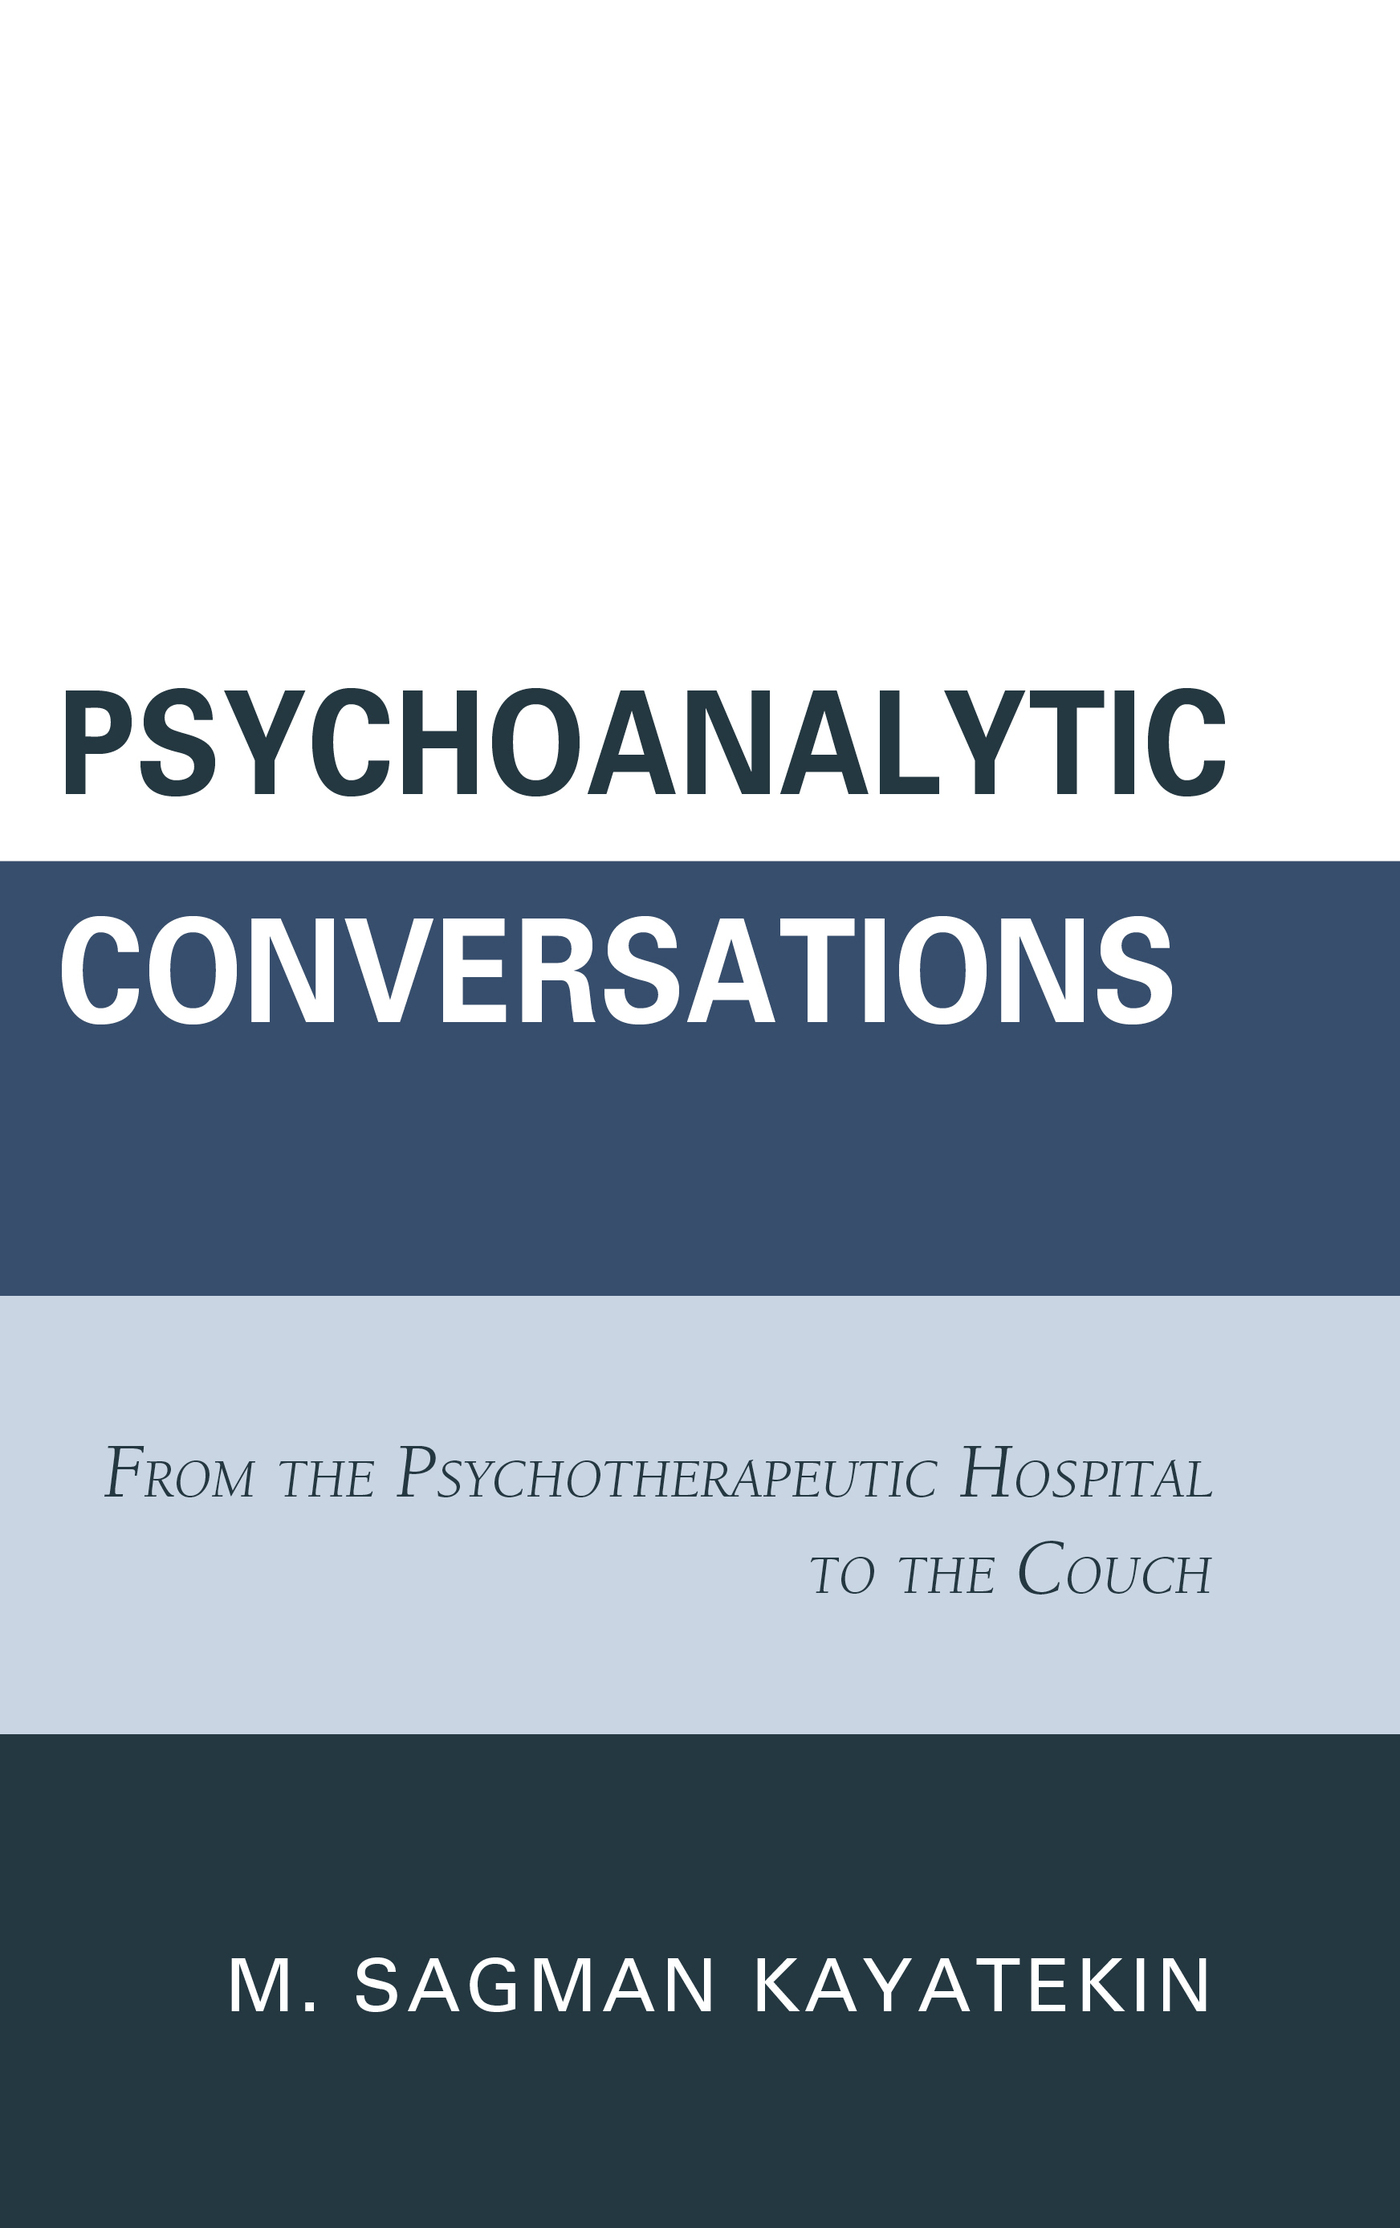 an analysis of psychoanalytic perspective on psychopathology Analysis of psychodynamic perspectives although the various psychodynamic theories contain many similar assumptions and explanations, each has slight variations in.